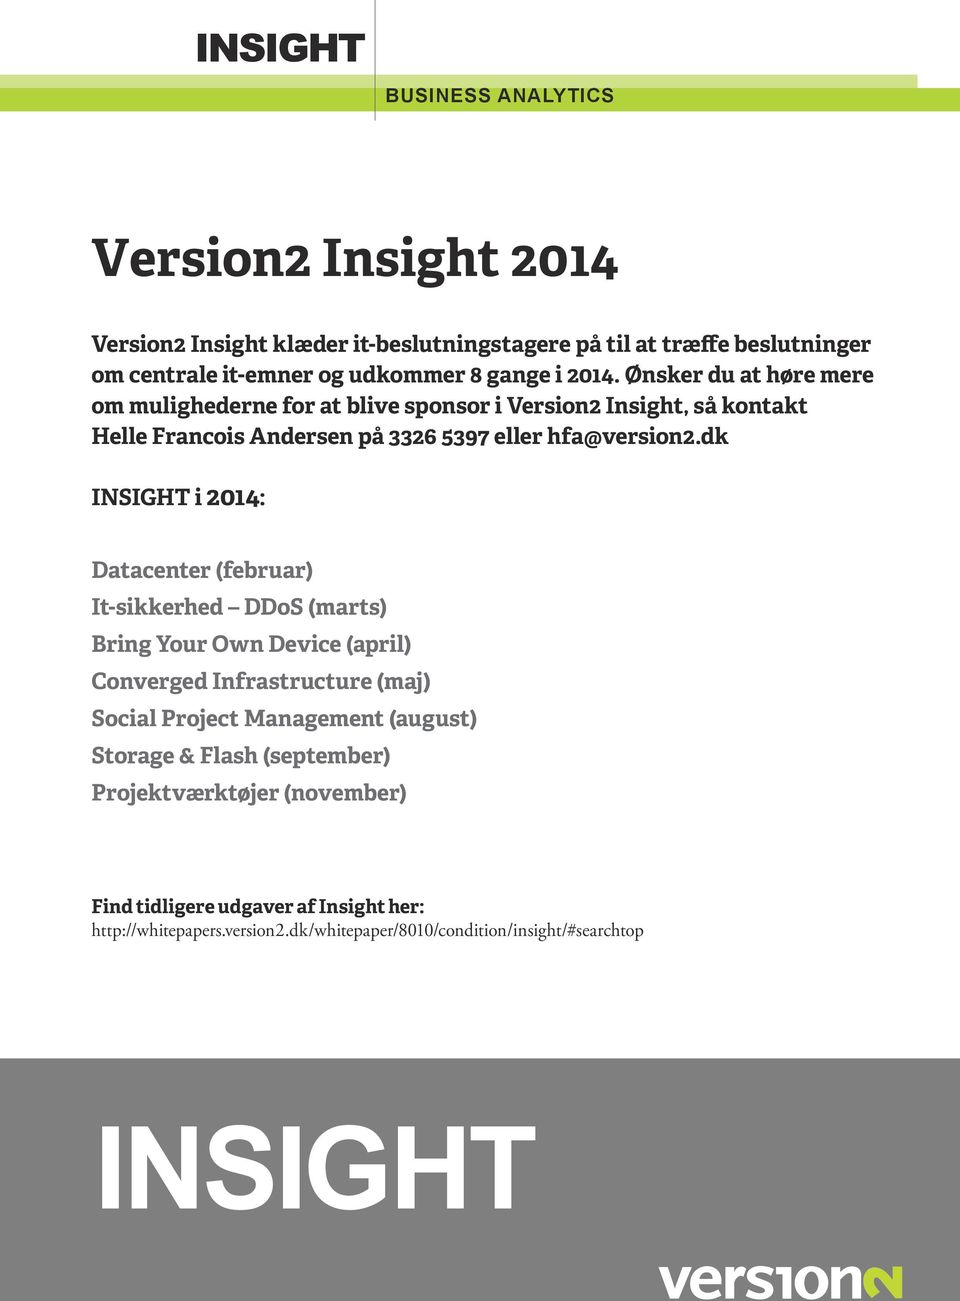 dk INSIGHT i 2014: Datacenter (februar) It-sikkerhed DDoS (marts) Bring Your Own Device (april) Converged Infrastructure (maj) Social Project Management